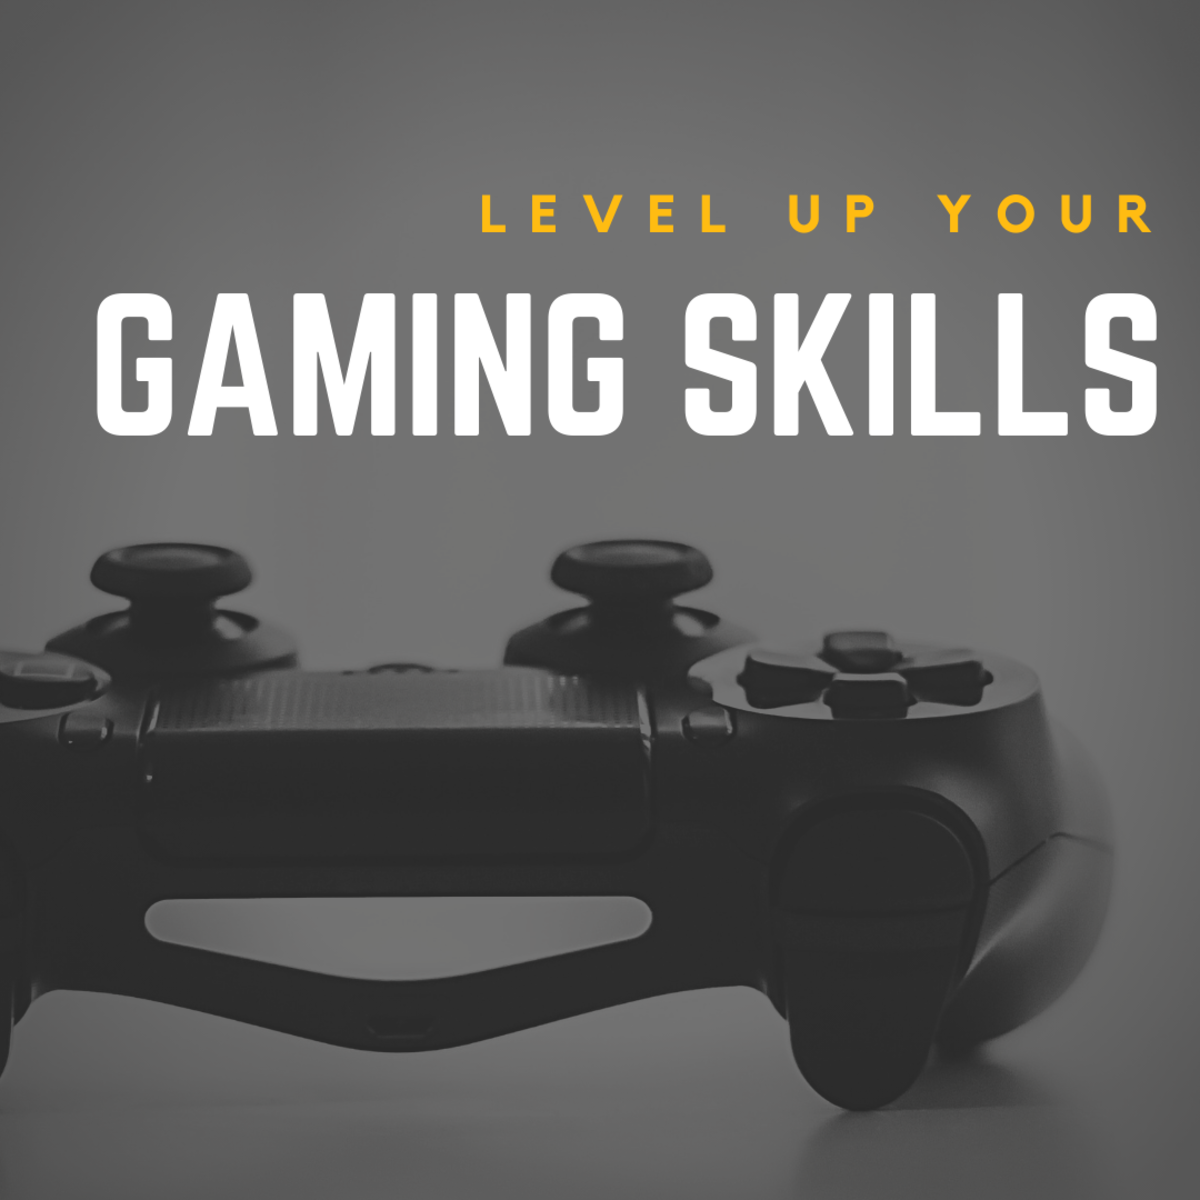 How to Increase Your Video Gaming Skills